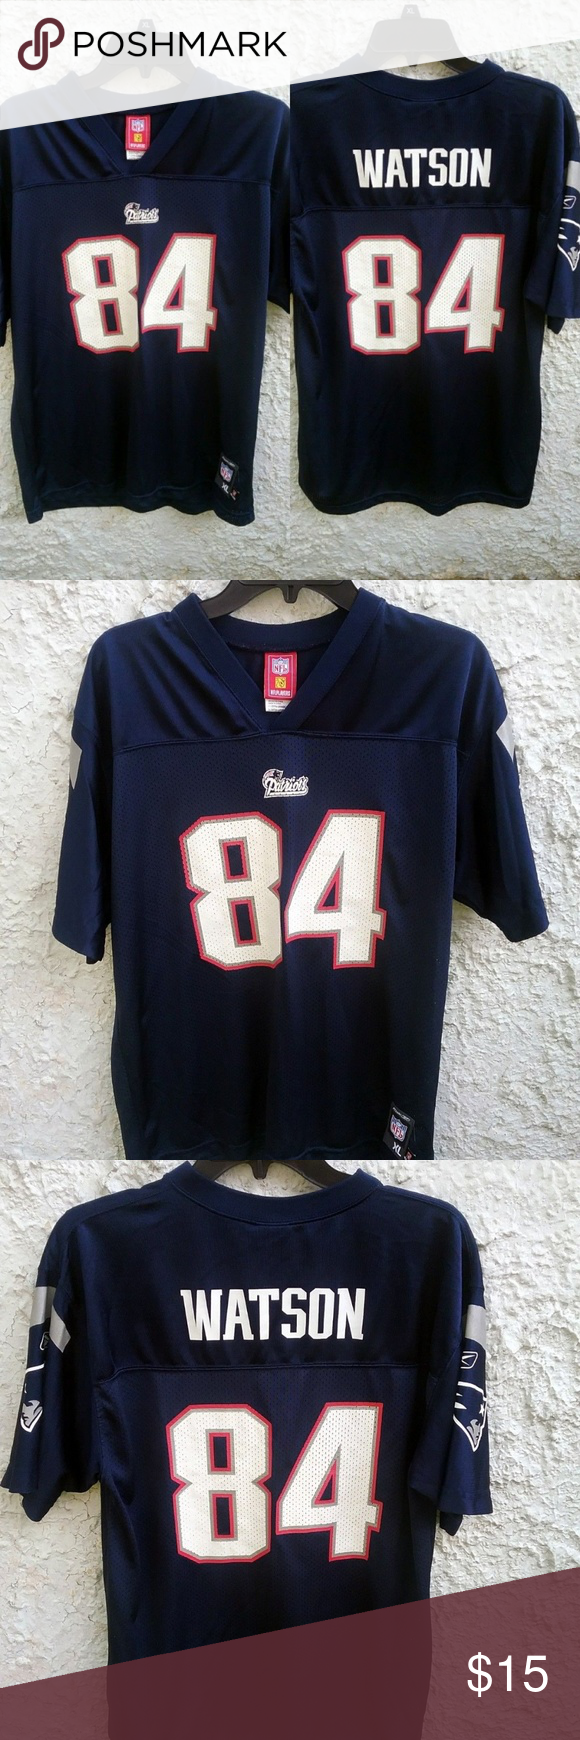 buy online 6d669 a0731 New England Patriots Watson Jersey Youth XL 18-20 New ...